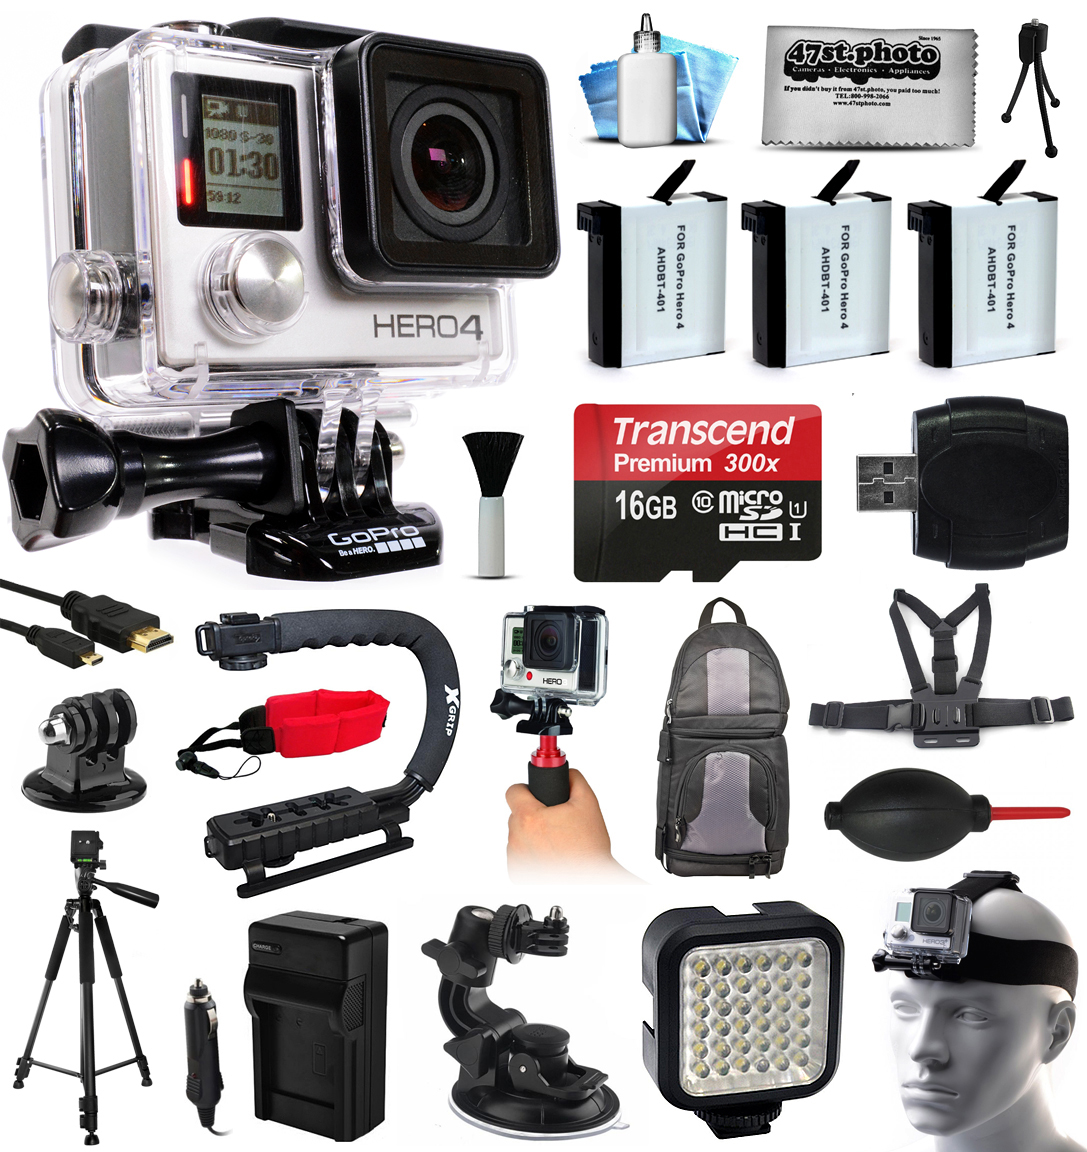 GoPro HERO4 Silver Edition 4K Action Camera with 16GB MicroSD, 3x Batteries, Charger, Card Reader, Backpack, Chest Harness, Action Handle, Tripod, Car Mount, LED Light, Helmet Strap, Dust Cleaning Kit